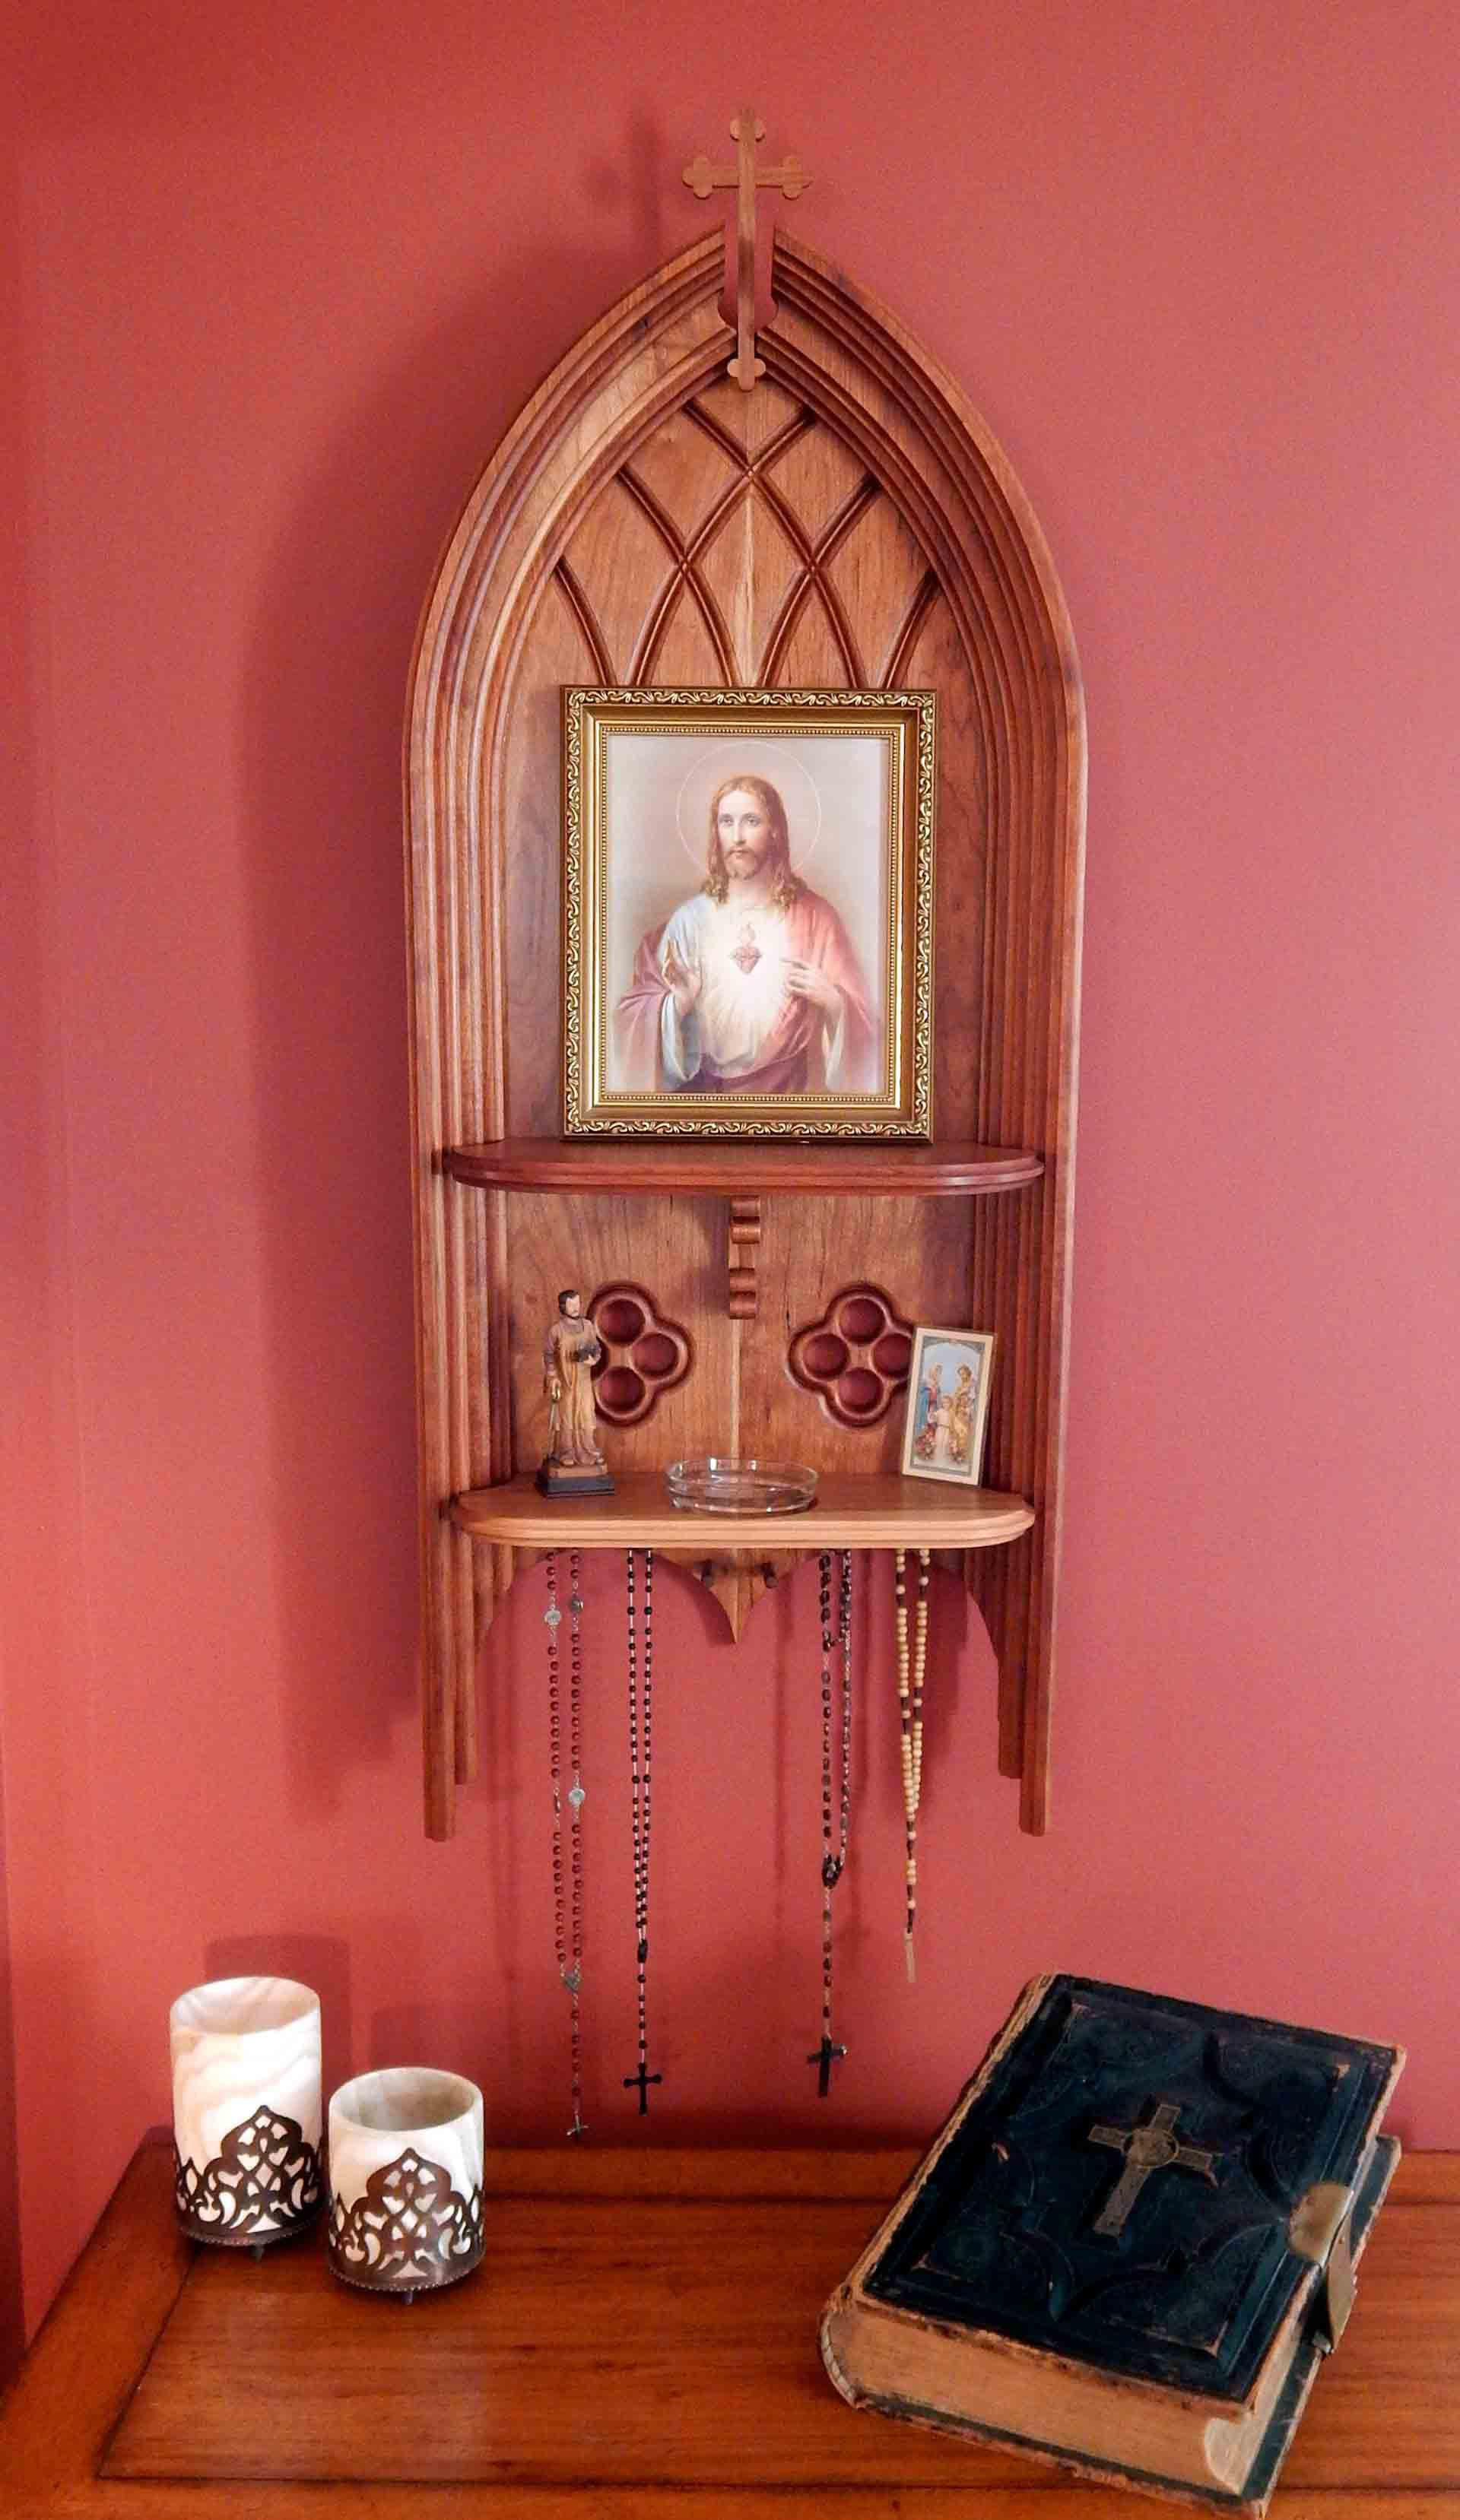 Christian home d?cor using religious trinkets